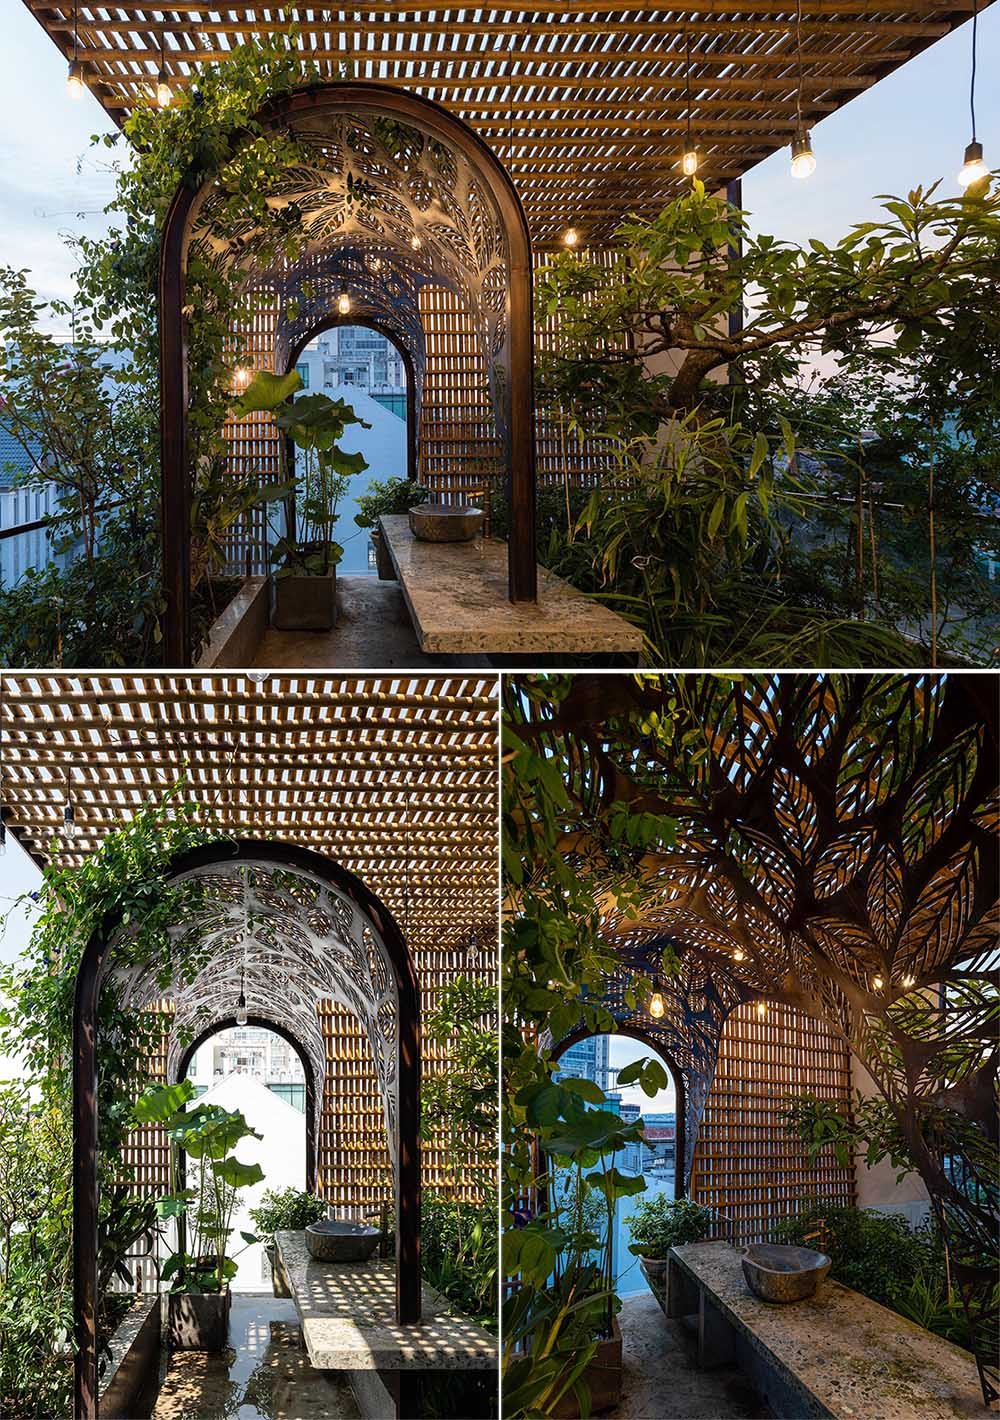 At the top of a modern house there's an outdoor space with an arched arbor, with plants that complement the leaf motif.